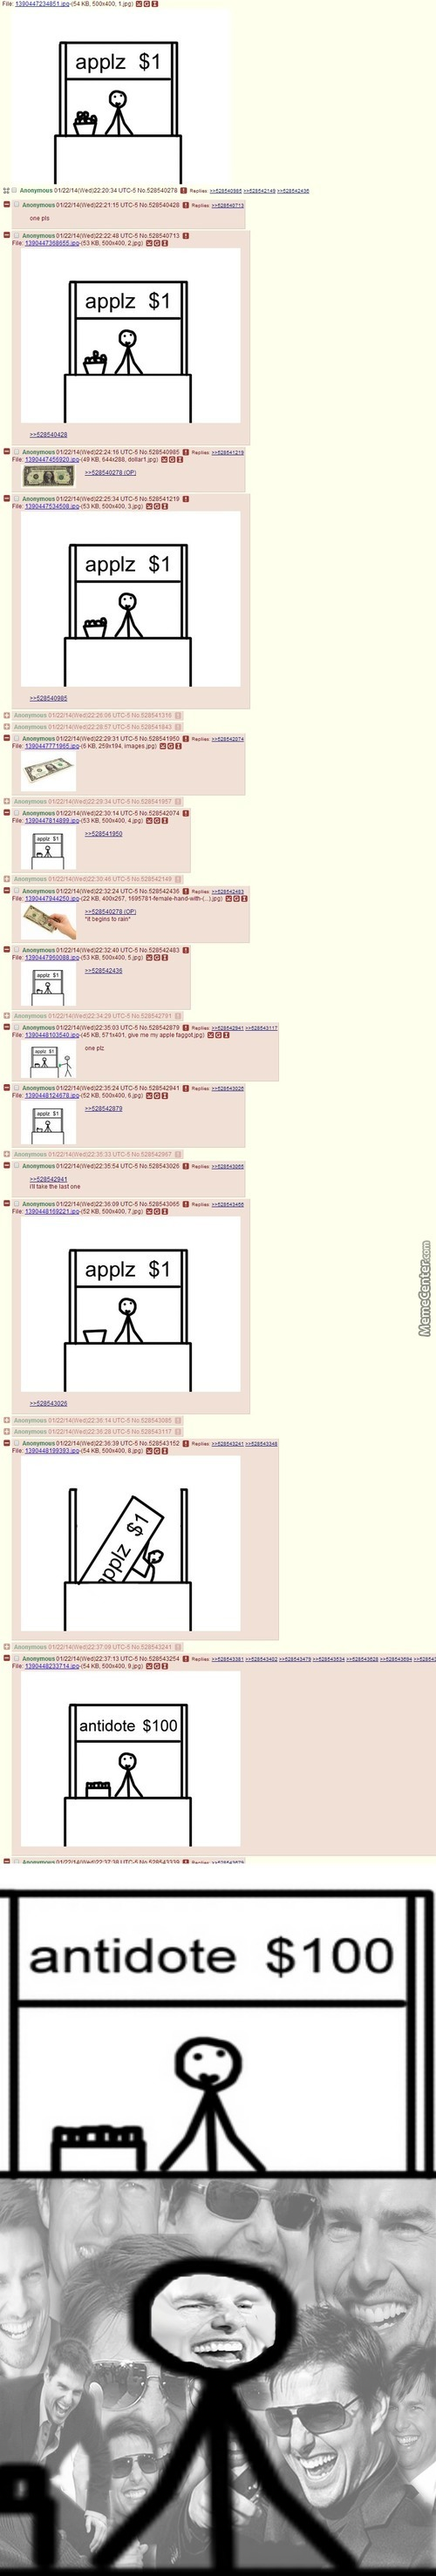 Just 4Chan Selling Apples